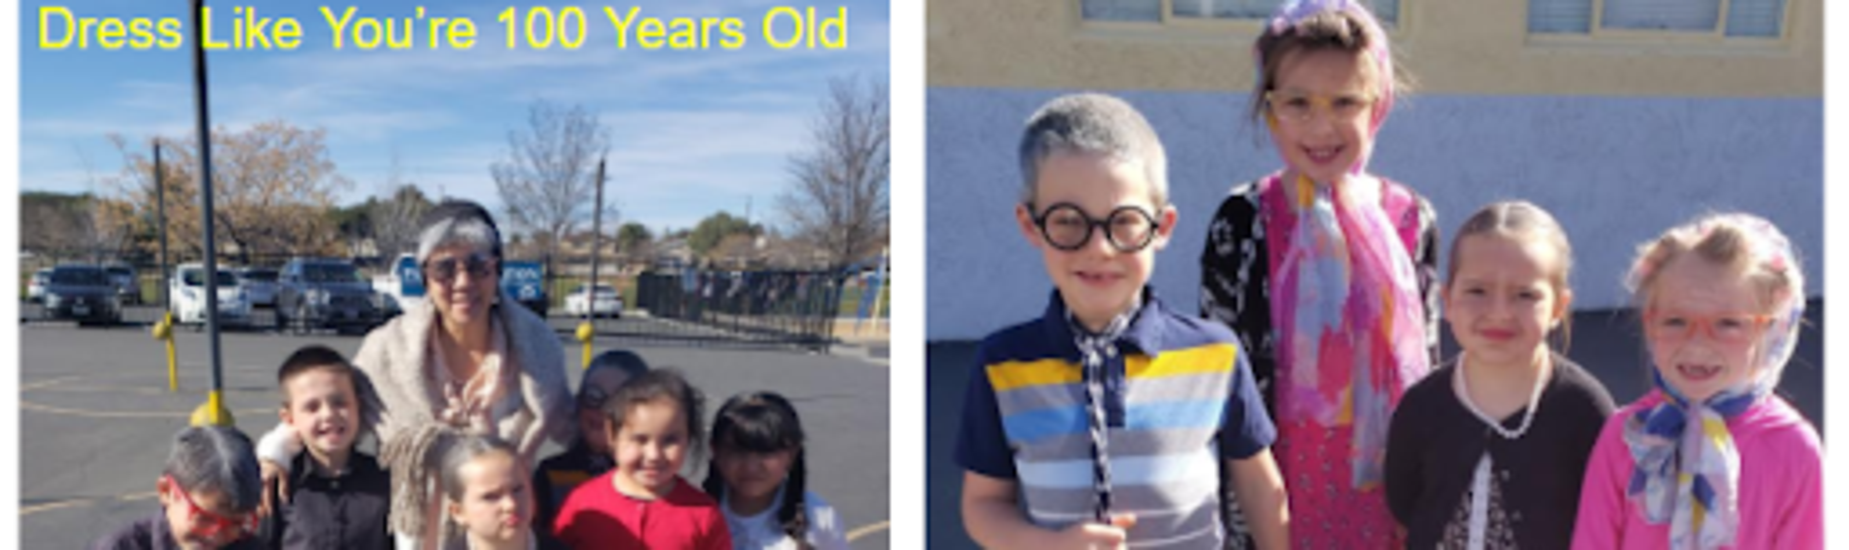 Dress like you're 100 years old